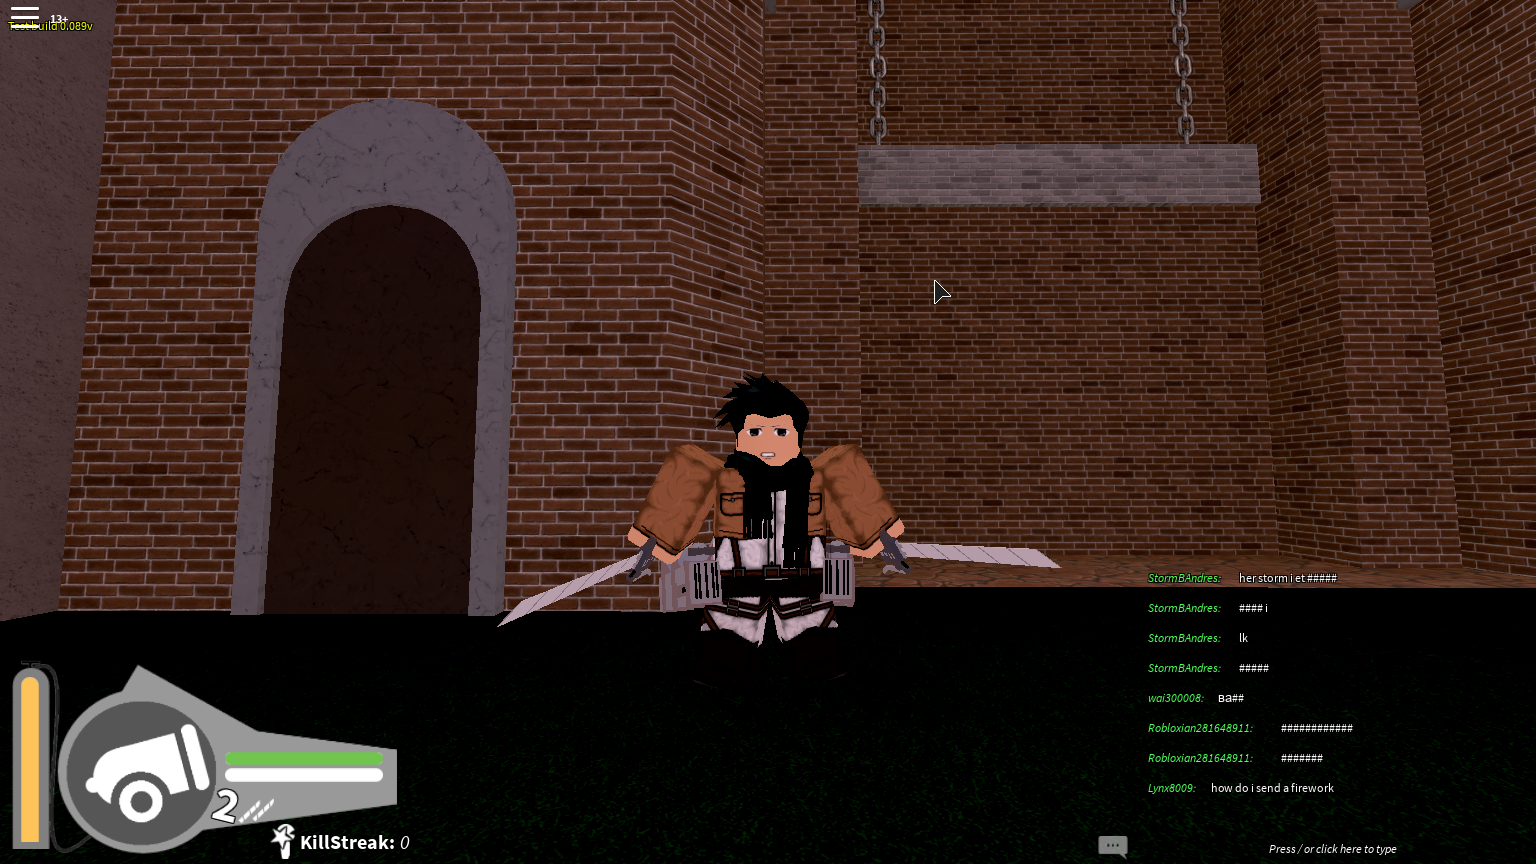 How To Get Gear In Atack On Titan Roblox Game How To Get Free